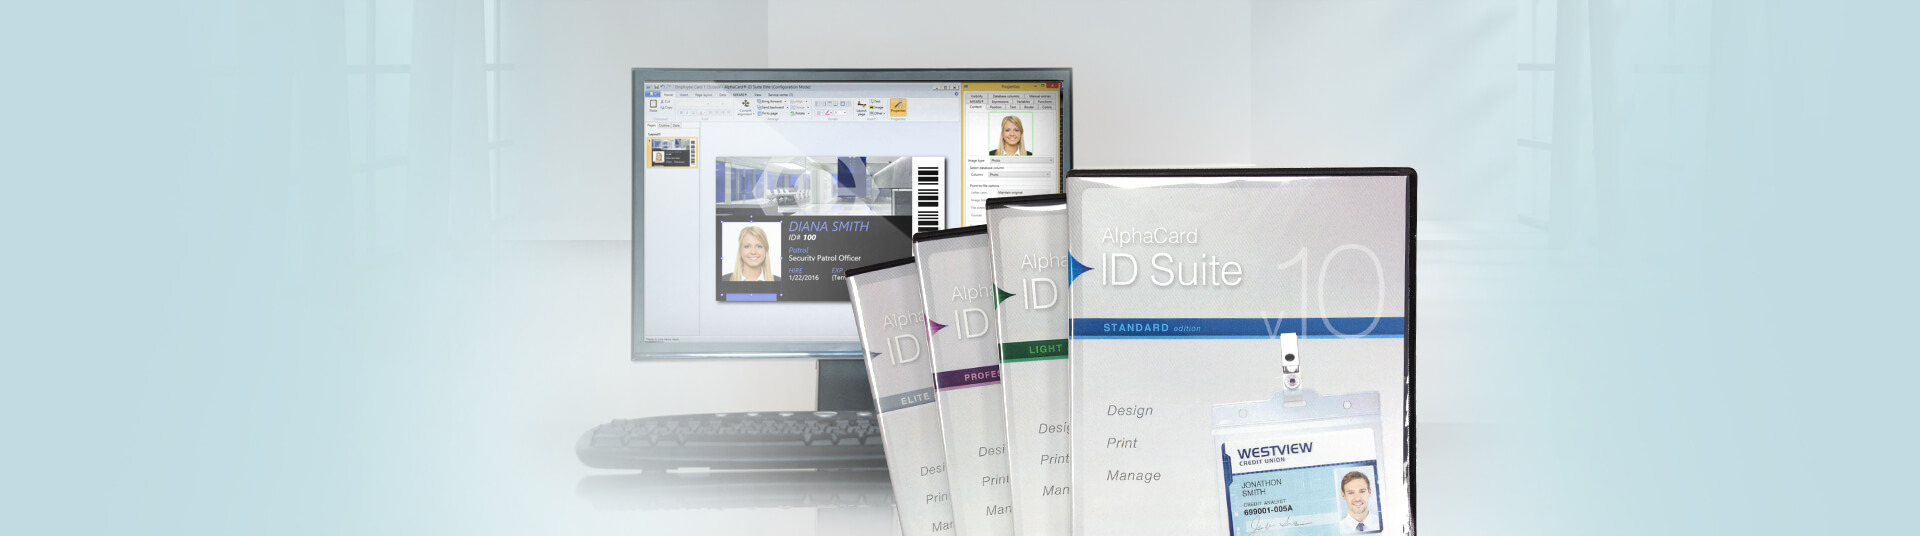 How to Create an ID Card Database in AlphaCard Standard